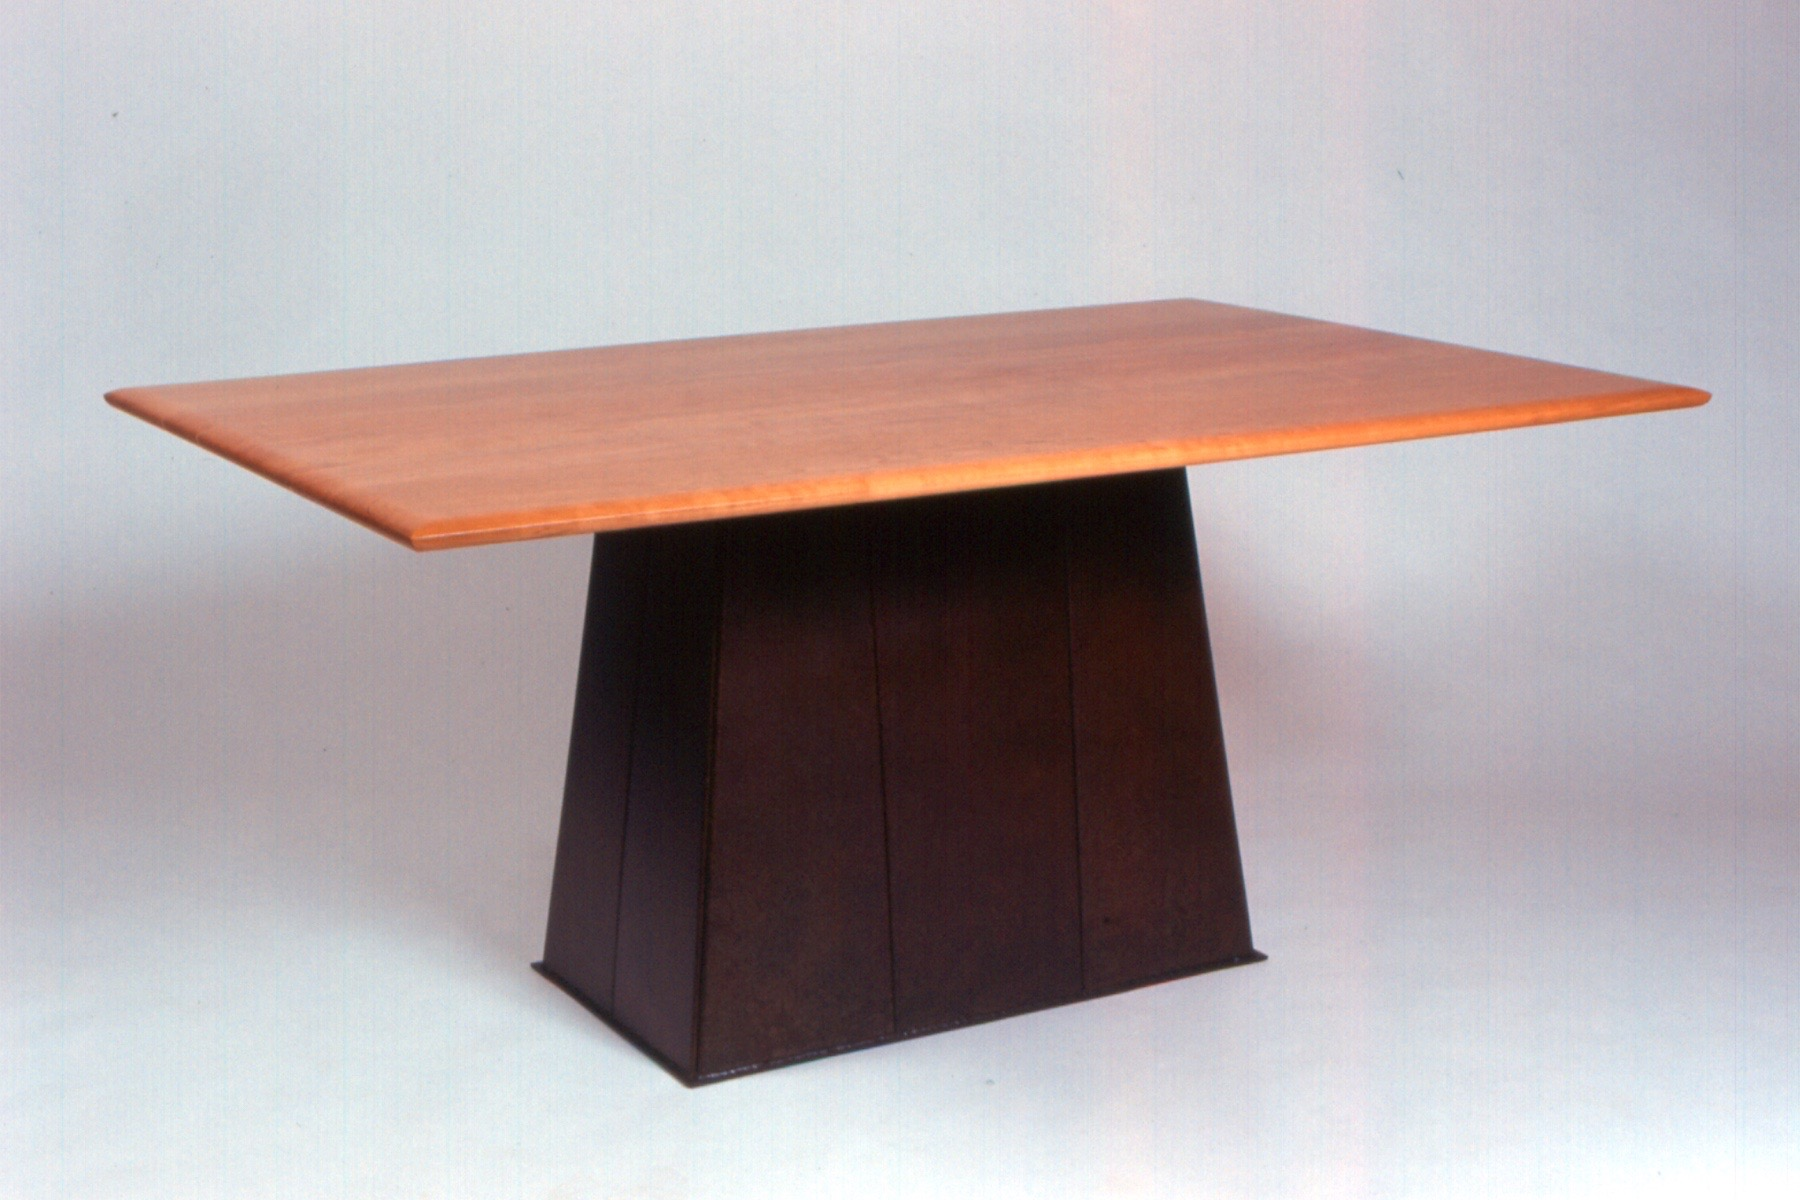 Steel Base Dining Table.jpg